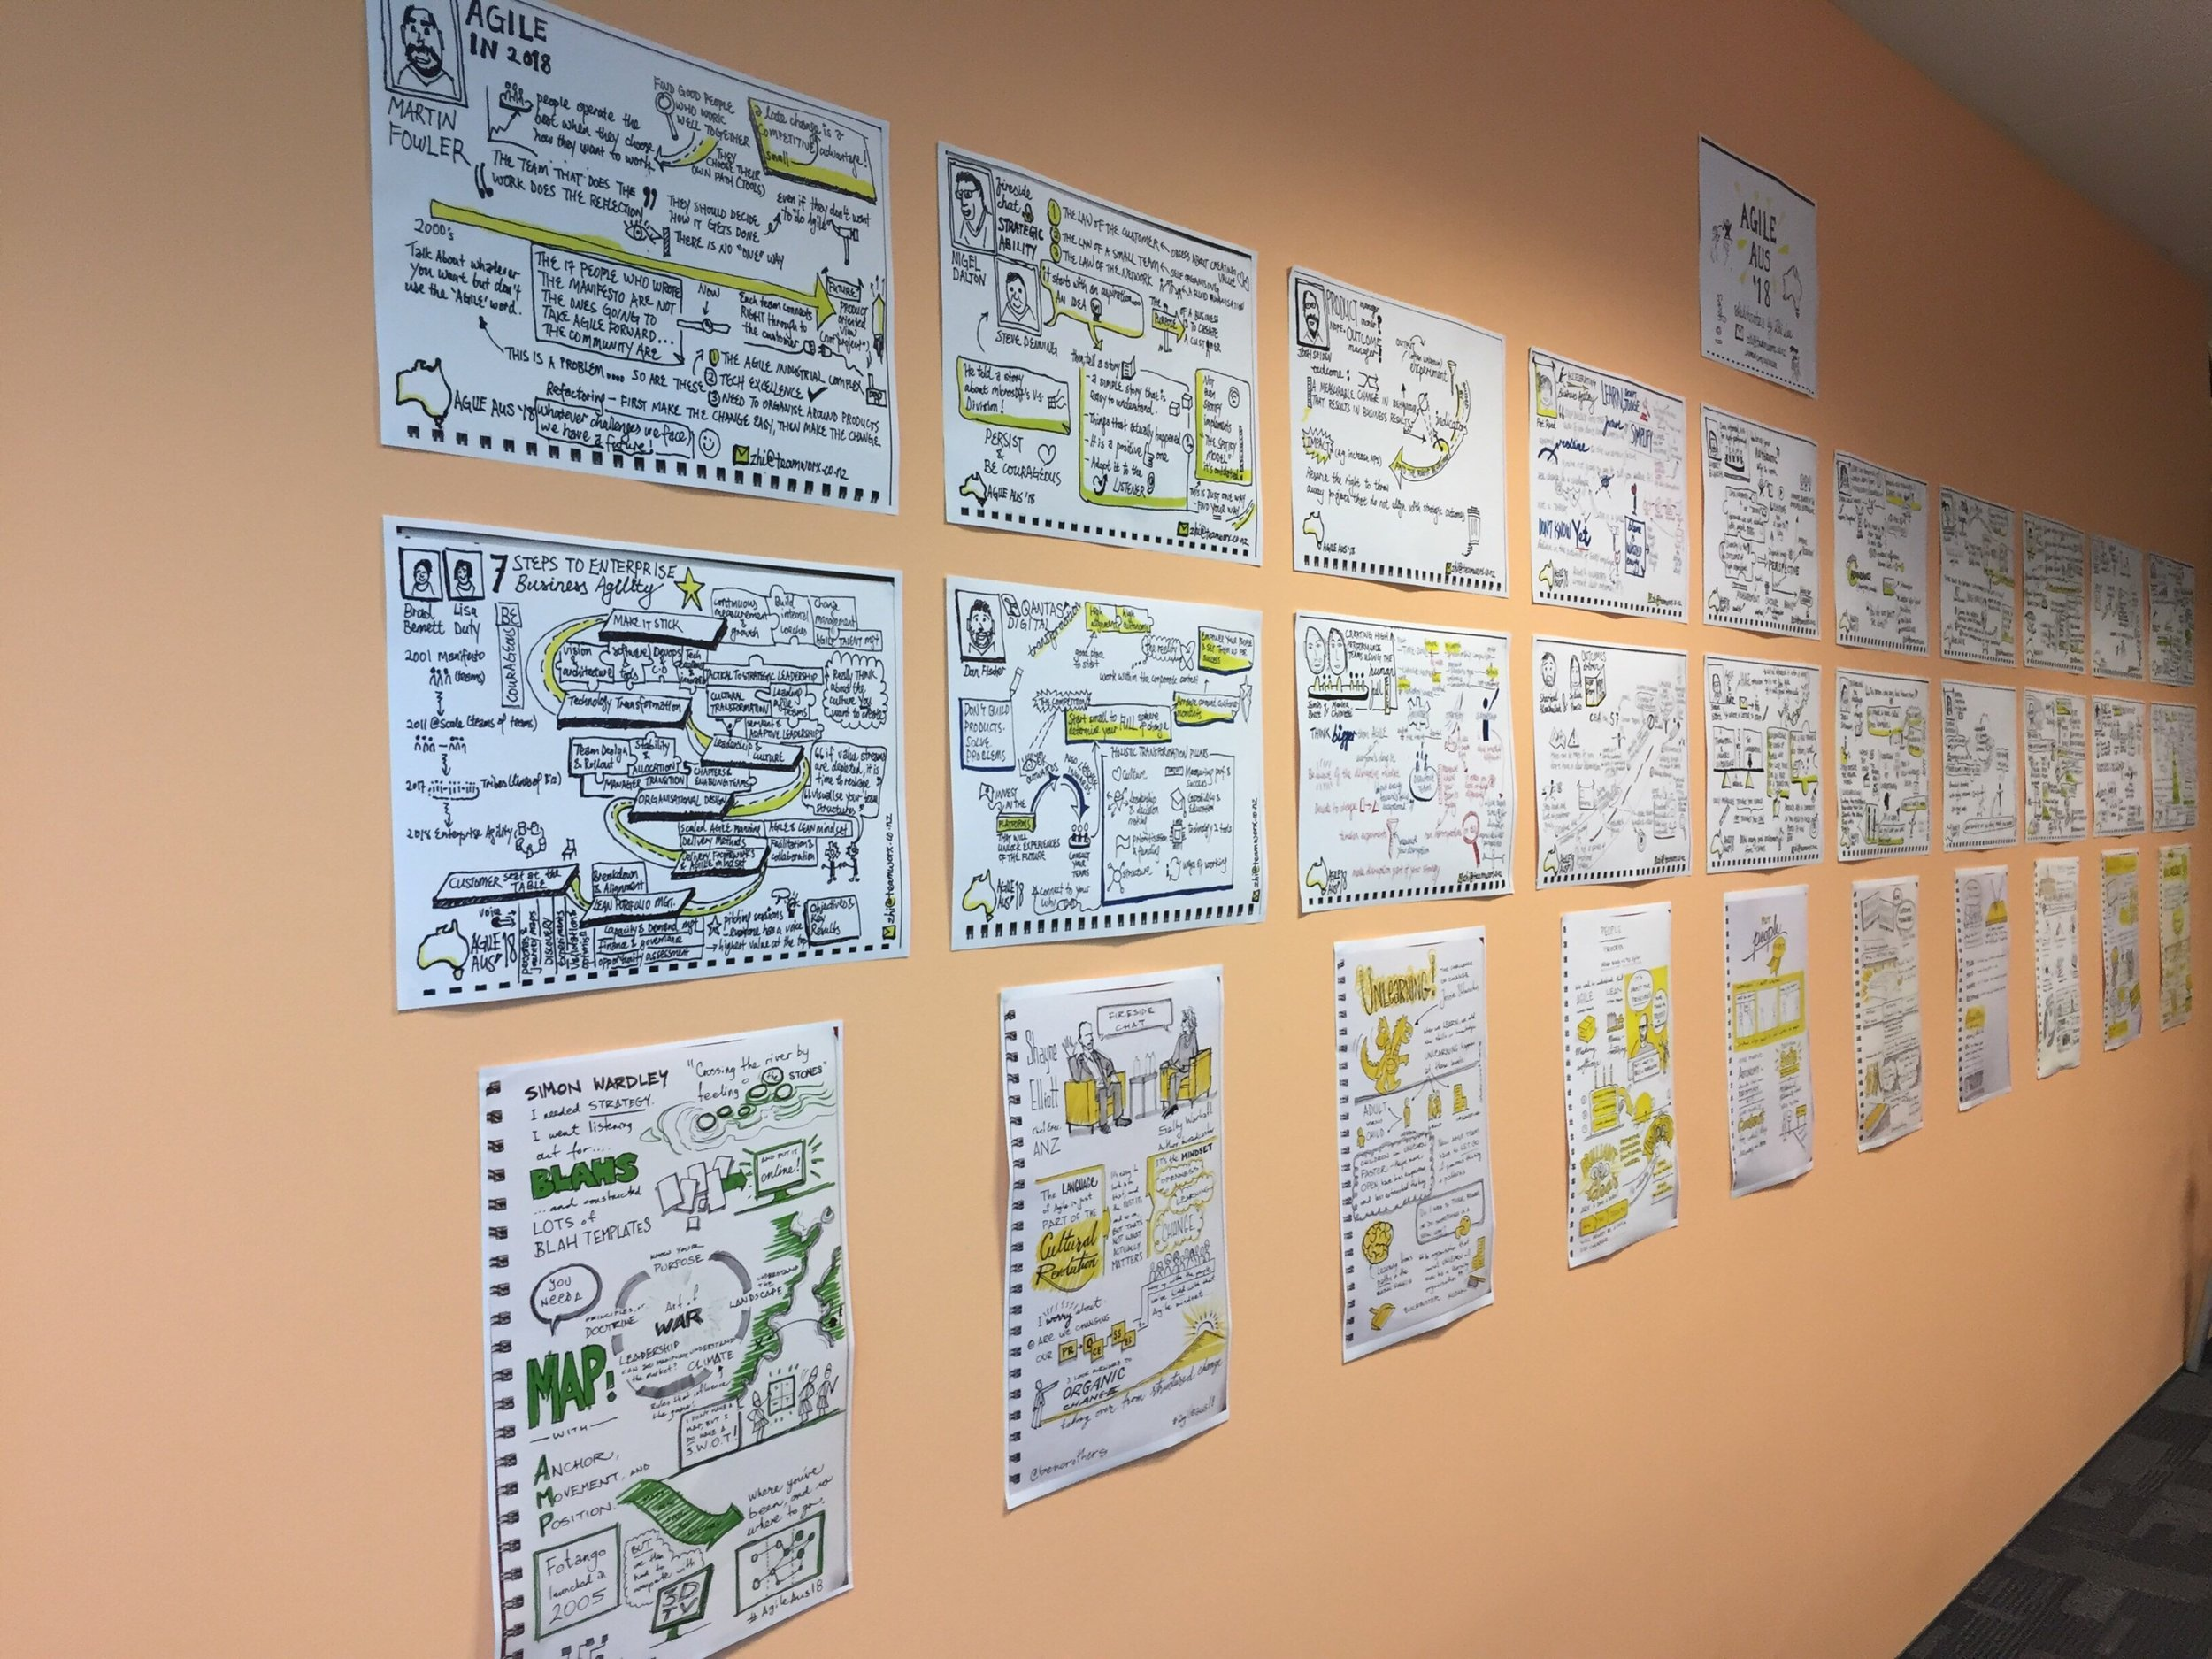 Sketchnote collection from AgileAus18.